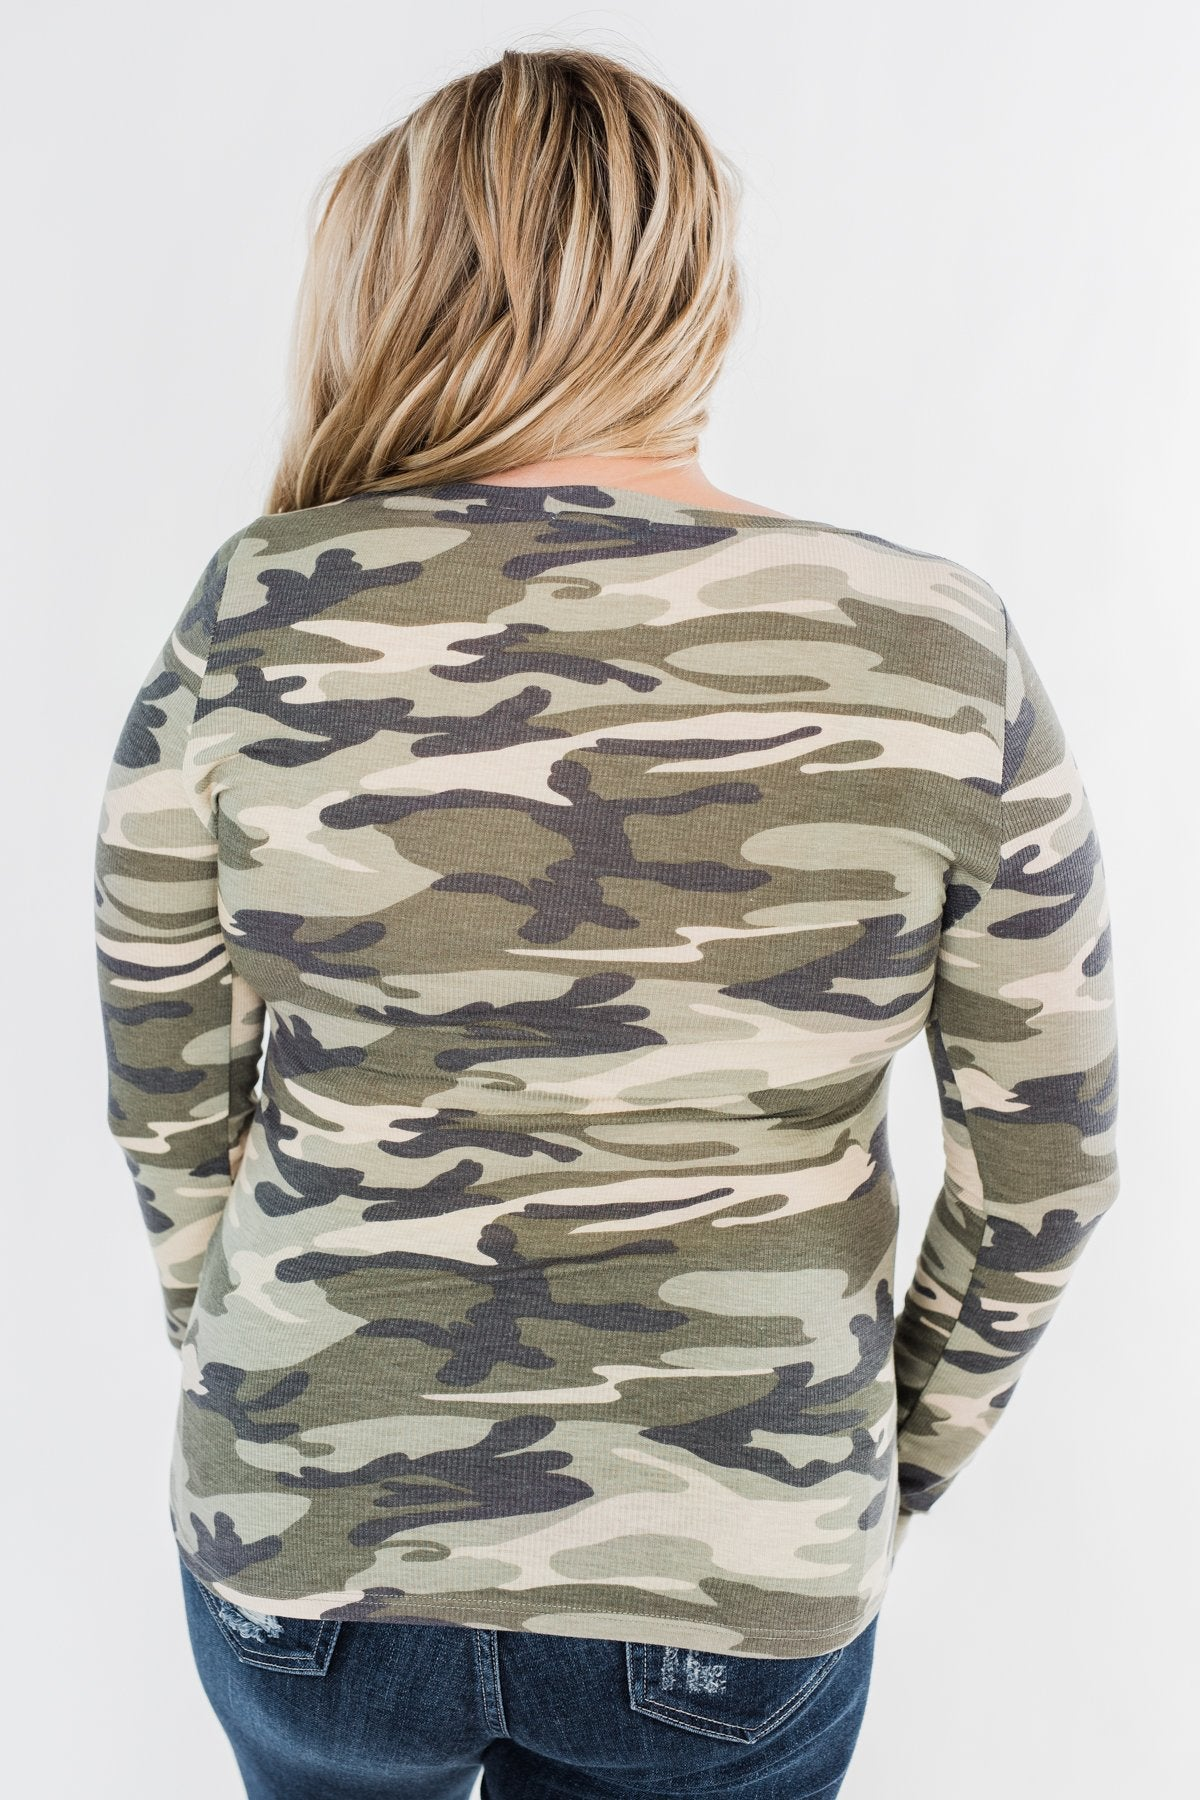 Sequin Pocket Long Sleeve Top- Camo